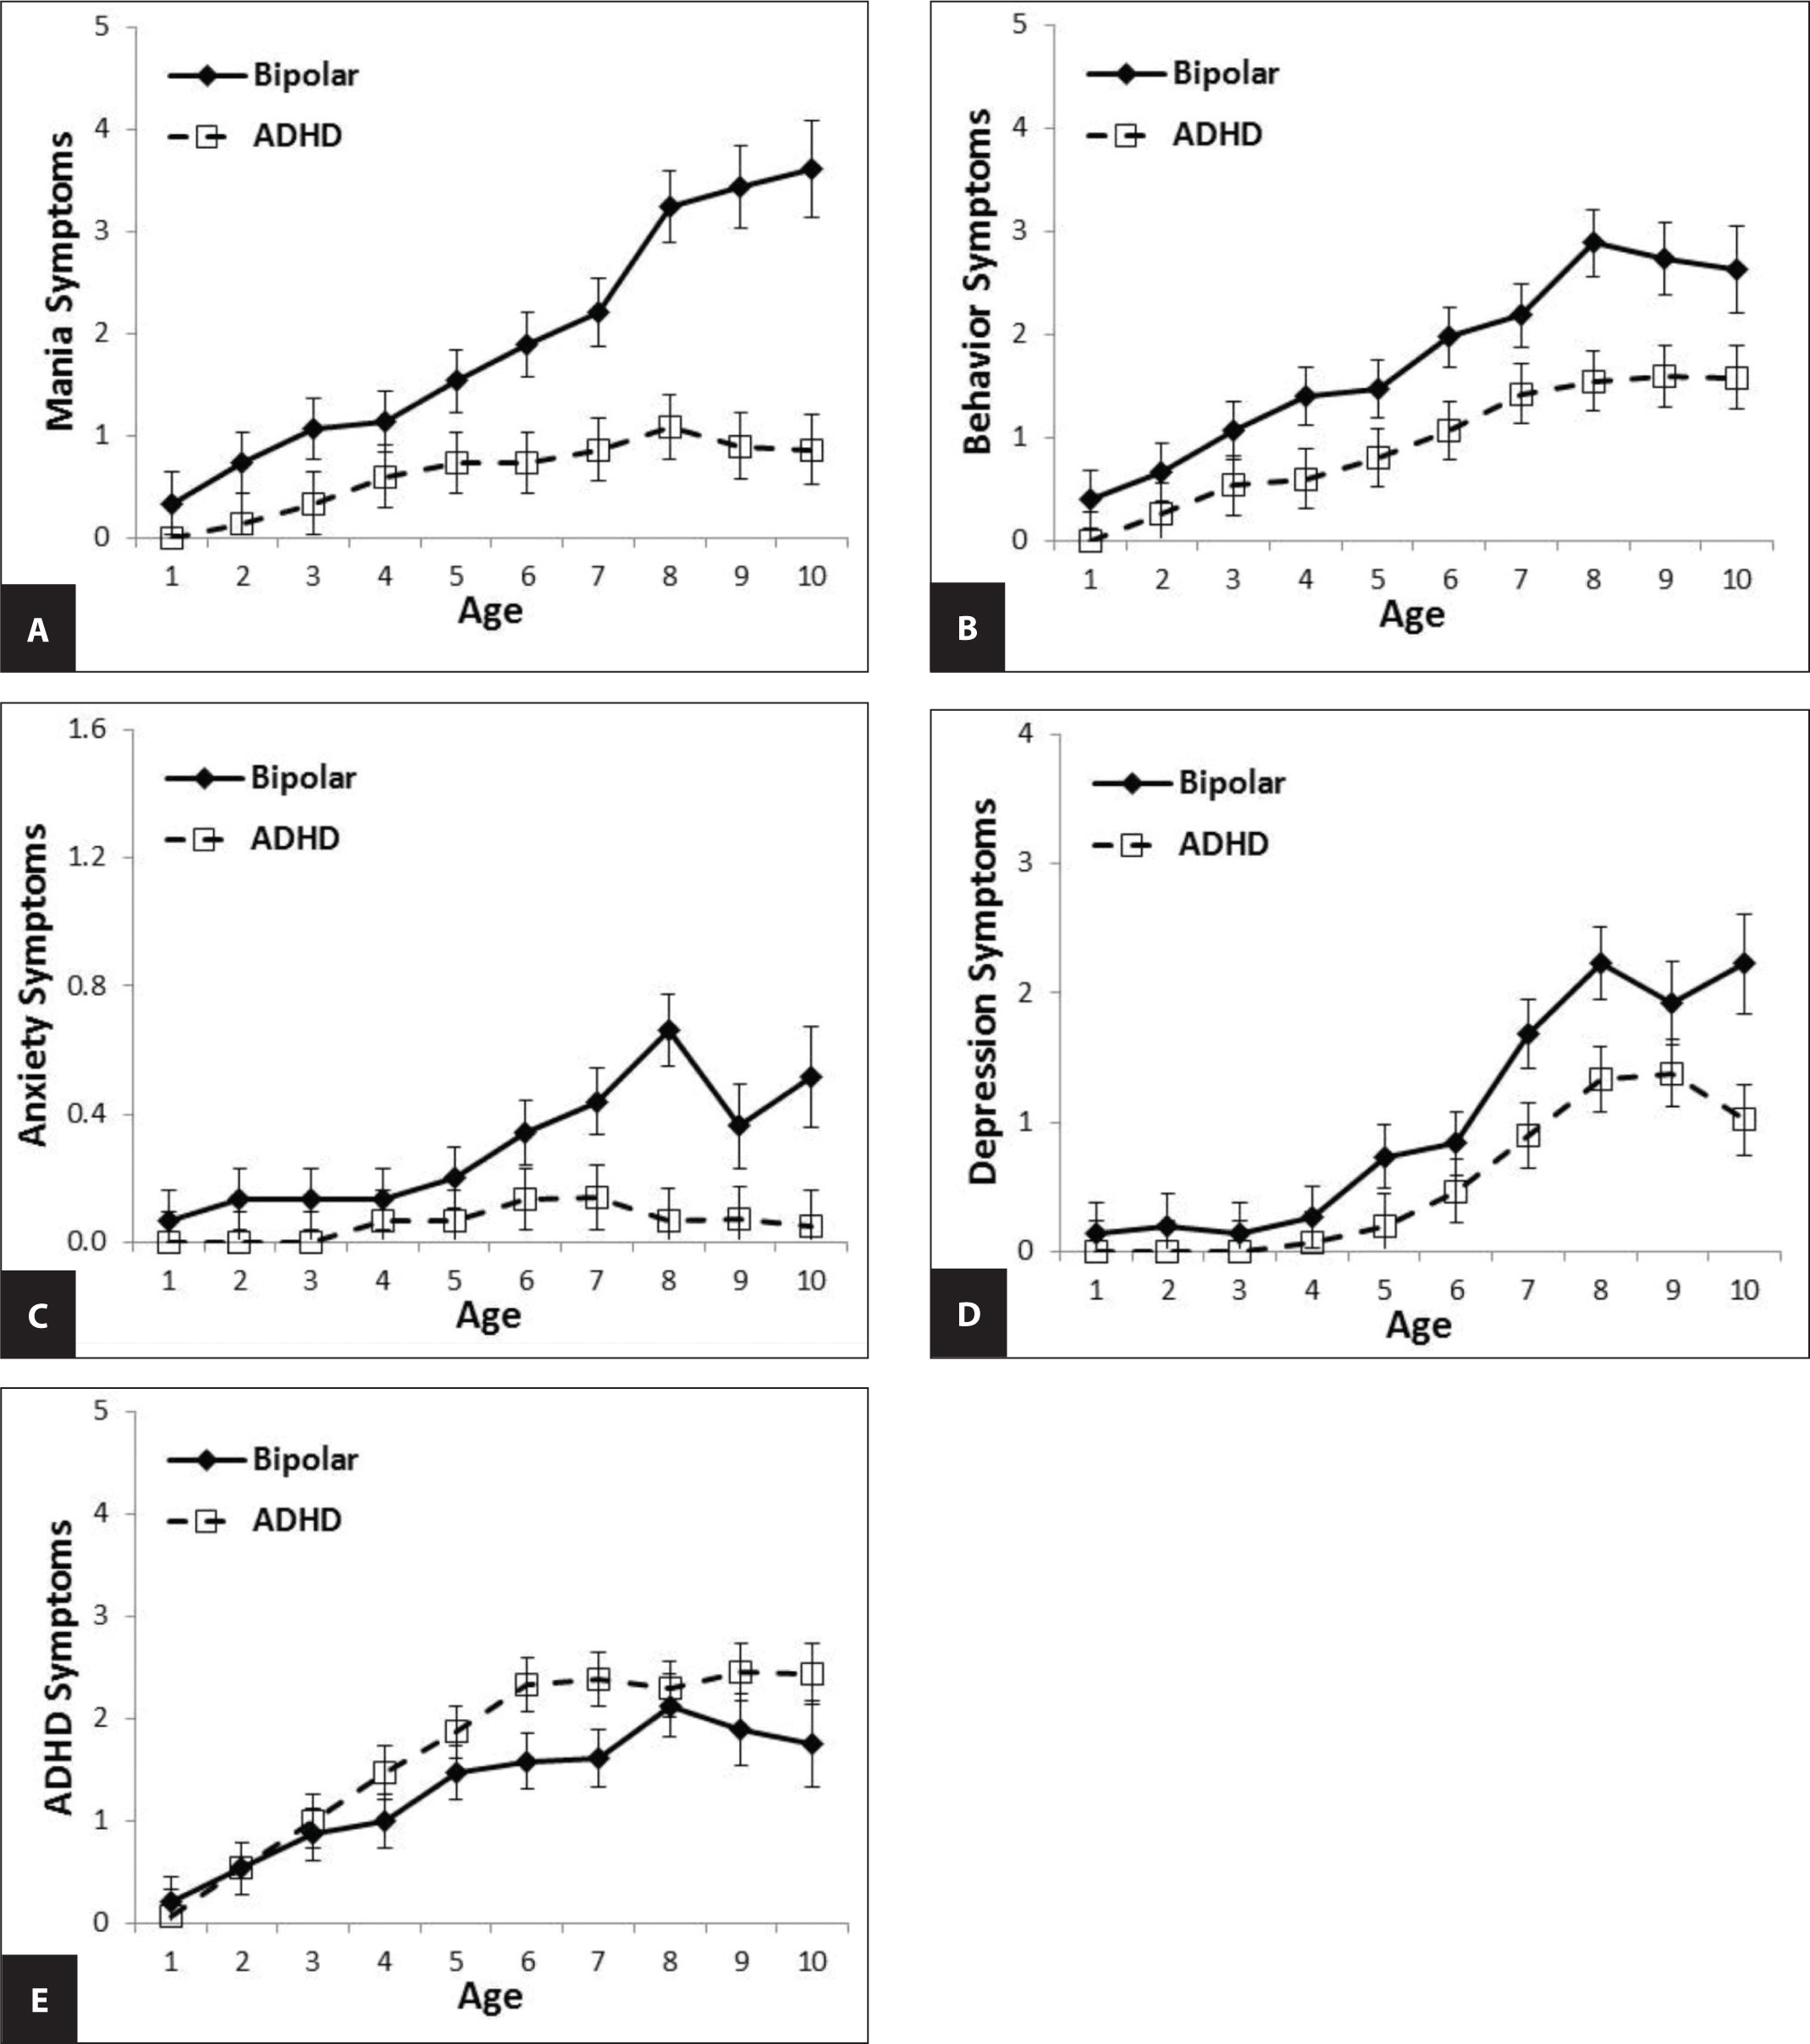 (A) More rapid accumulation of manic symptoms in prepubertal onset of bipolar disorder (P-BP) compared with attention-deficit/hyperactivity disorder (ADHD). (B) More behavioral dyscontrol symptoms in P-BP than in ADHD. (C) Anxiety symptoms emerge differentially after age 5 years. (D) Depressive symptoms do not significantly differentiate. (E) ADHD symptoms are similar in P-BP and ADHD.